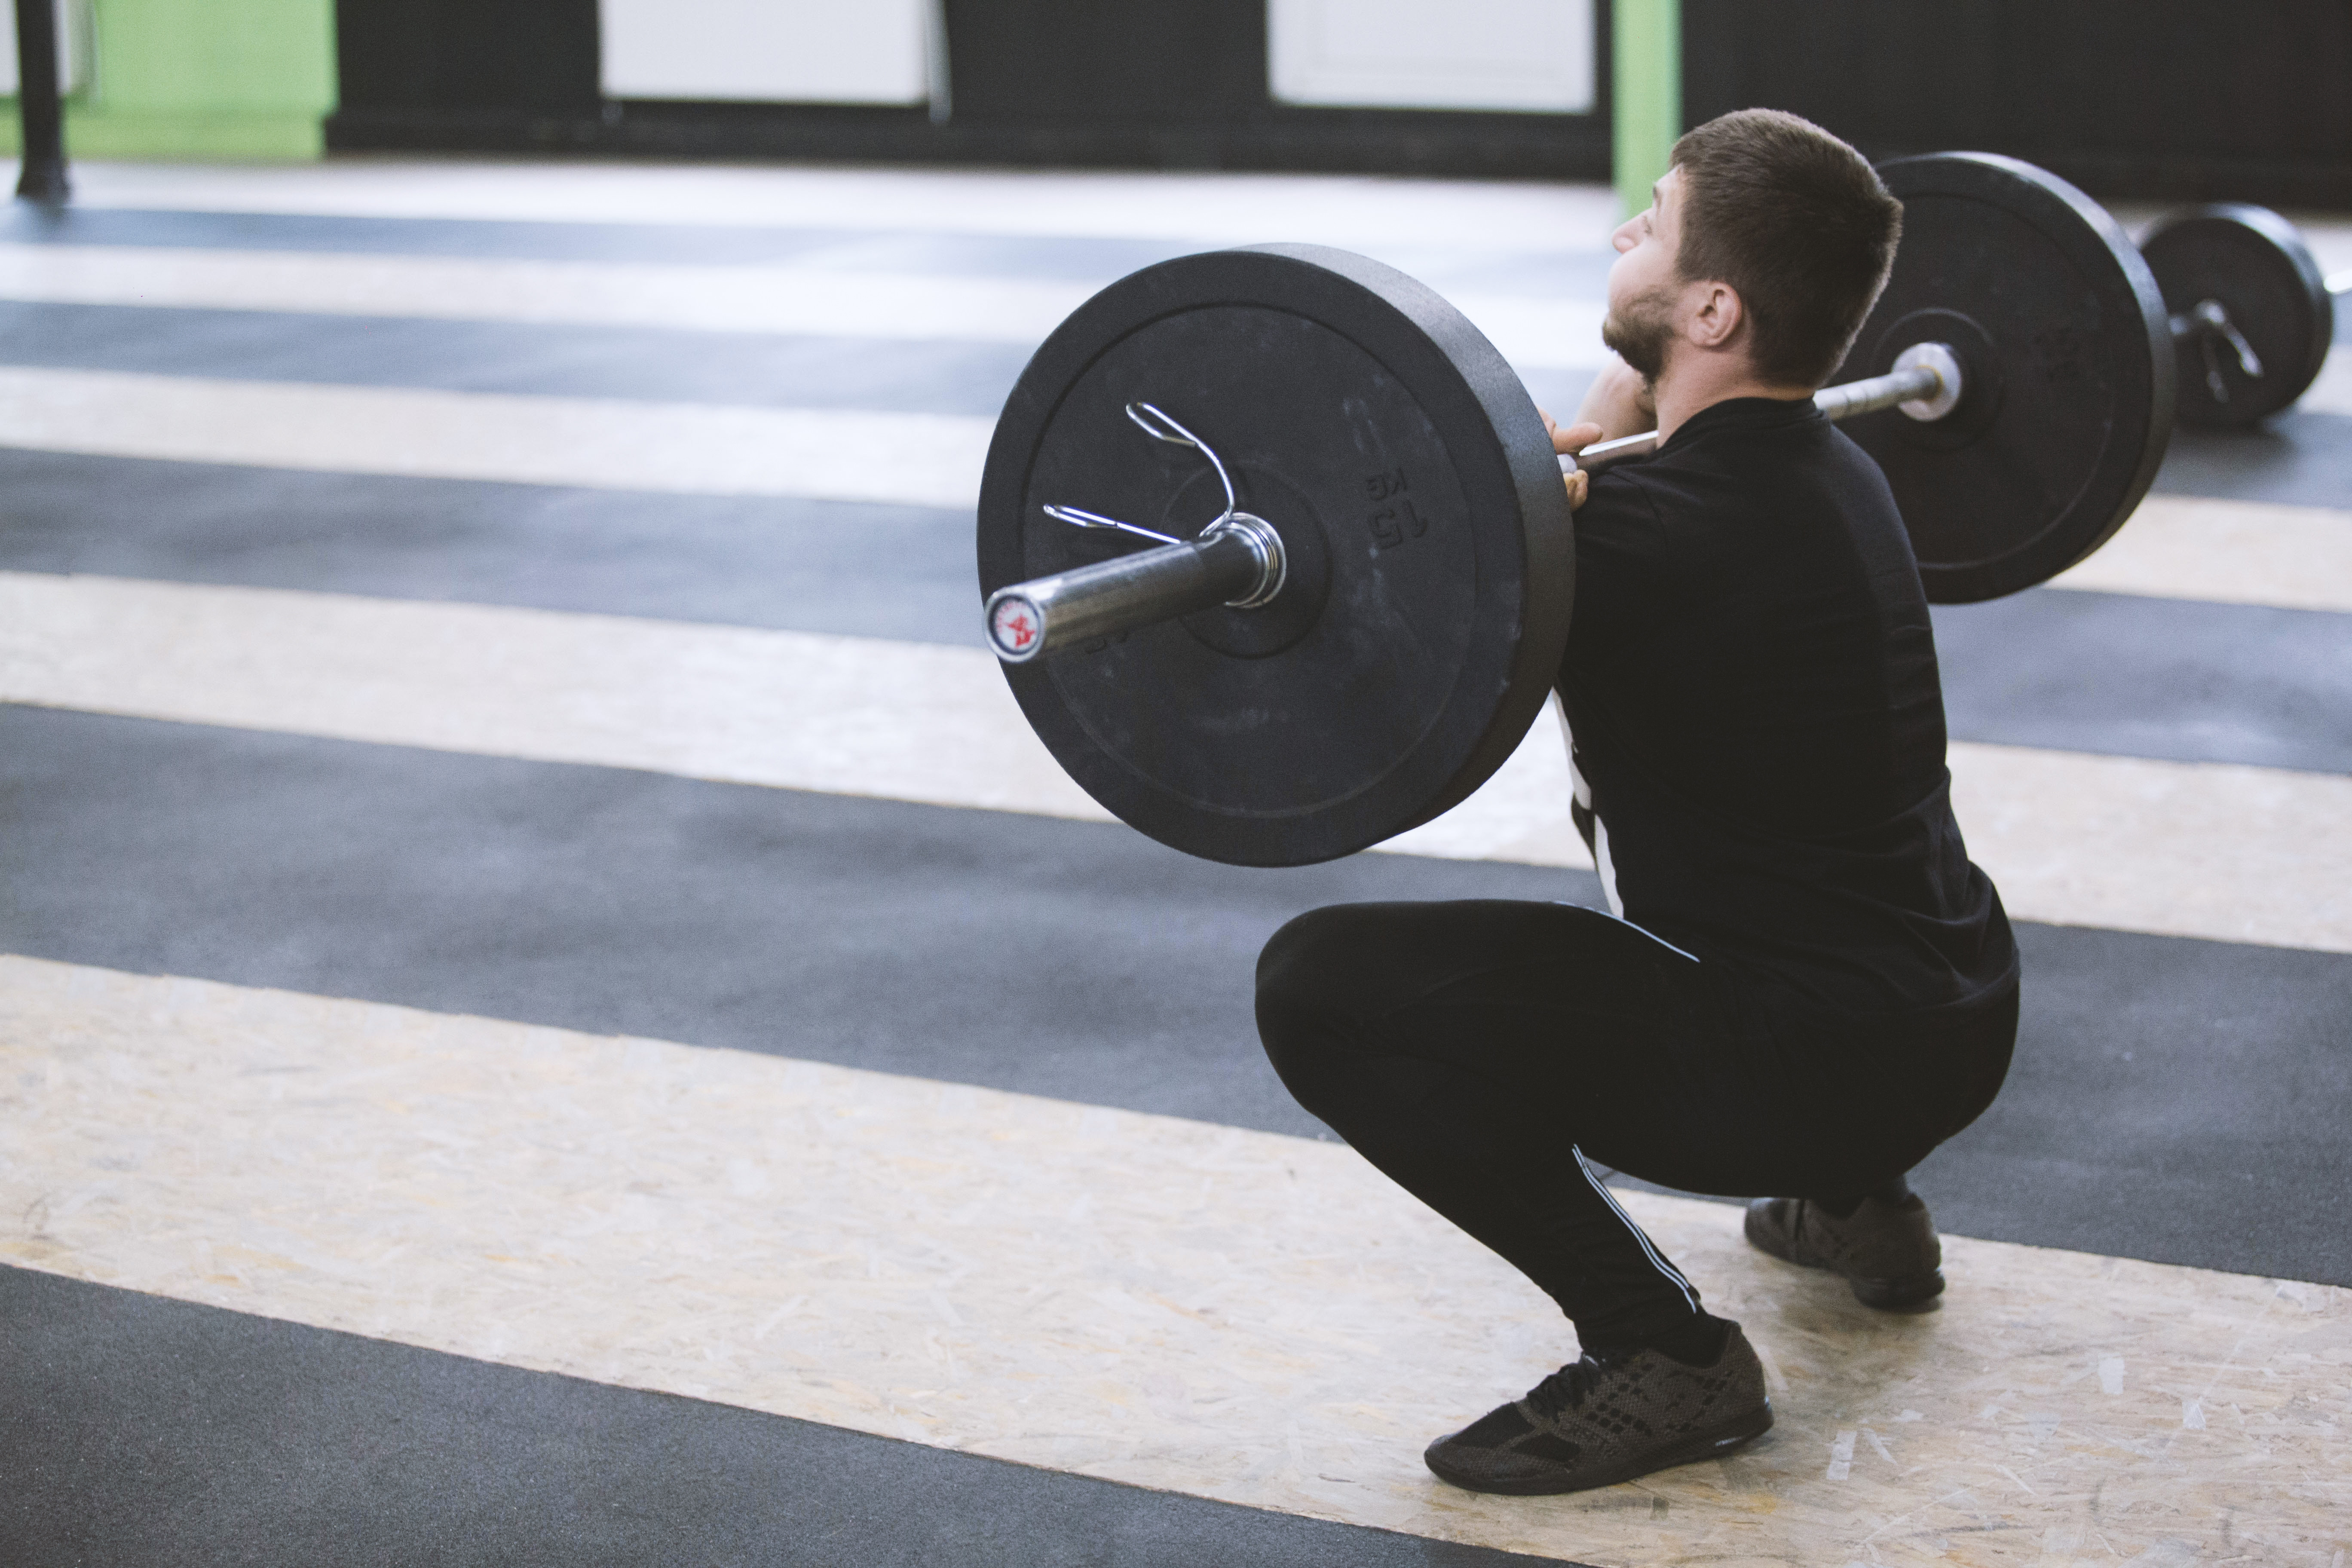 Weightlifting Skill Session